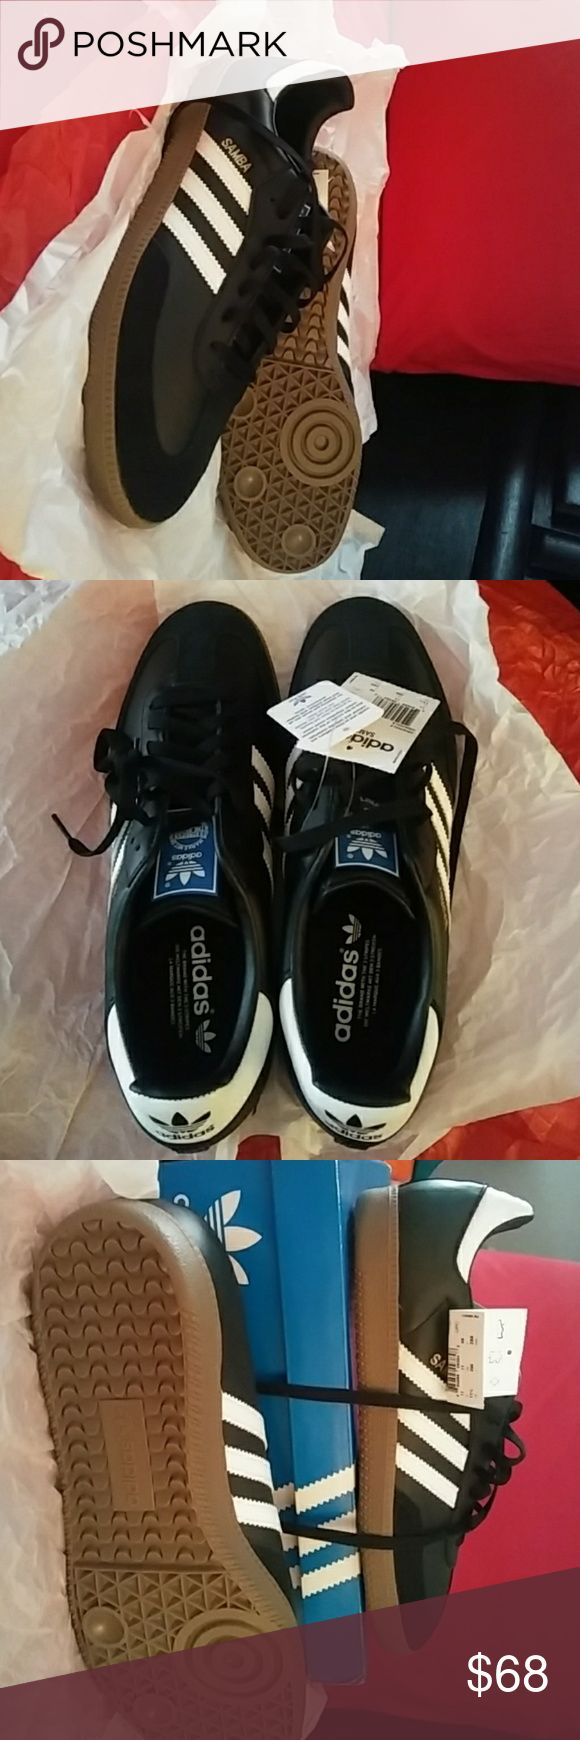 Adidas Samba Classic Men's ⚽ NWT never worn Adidas Samba Classic Men's Sneaker. Tags still attached. Kept in box. Perfect condition. US size 11.5 adidas Shoes Sneakers